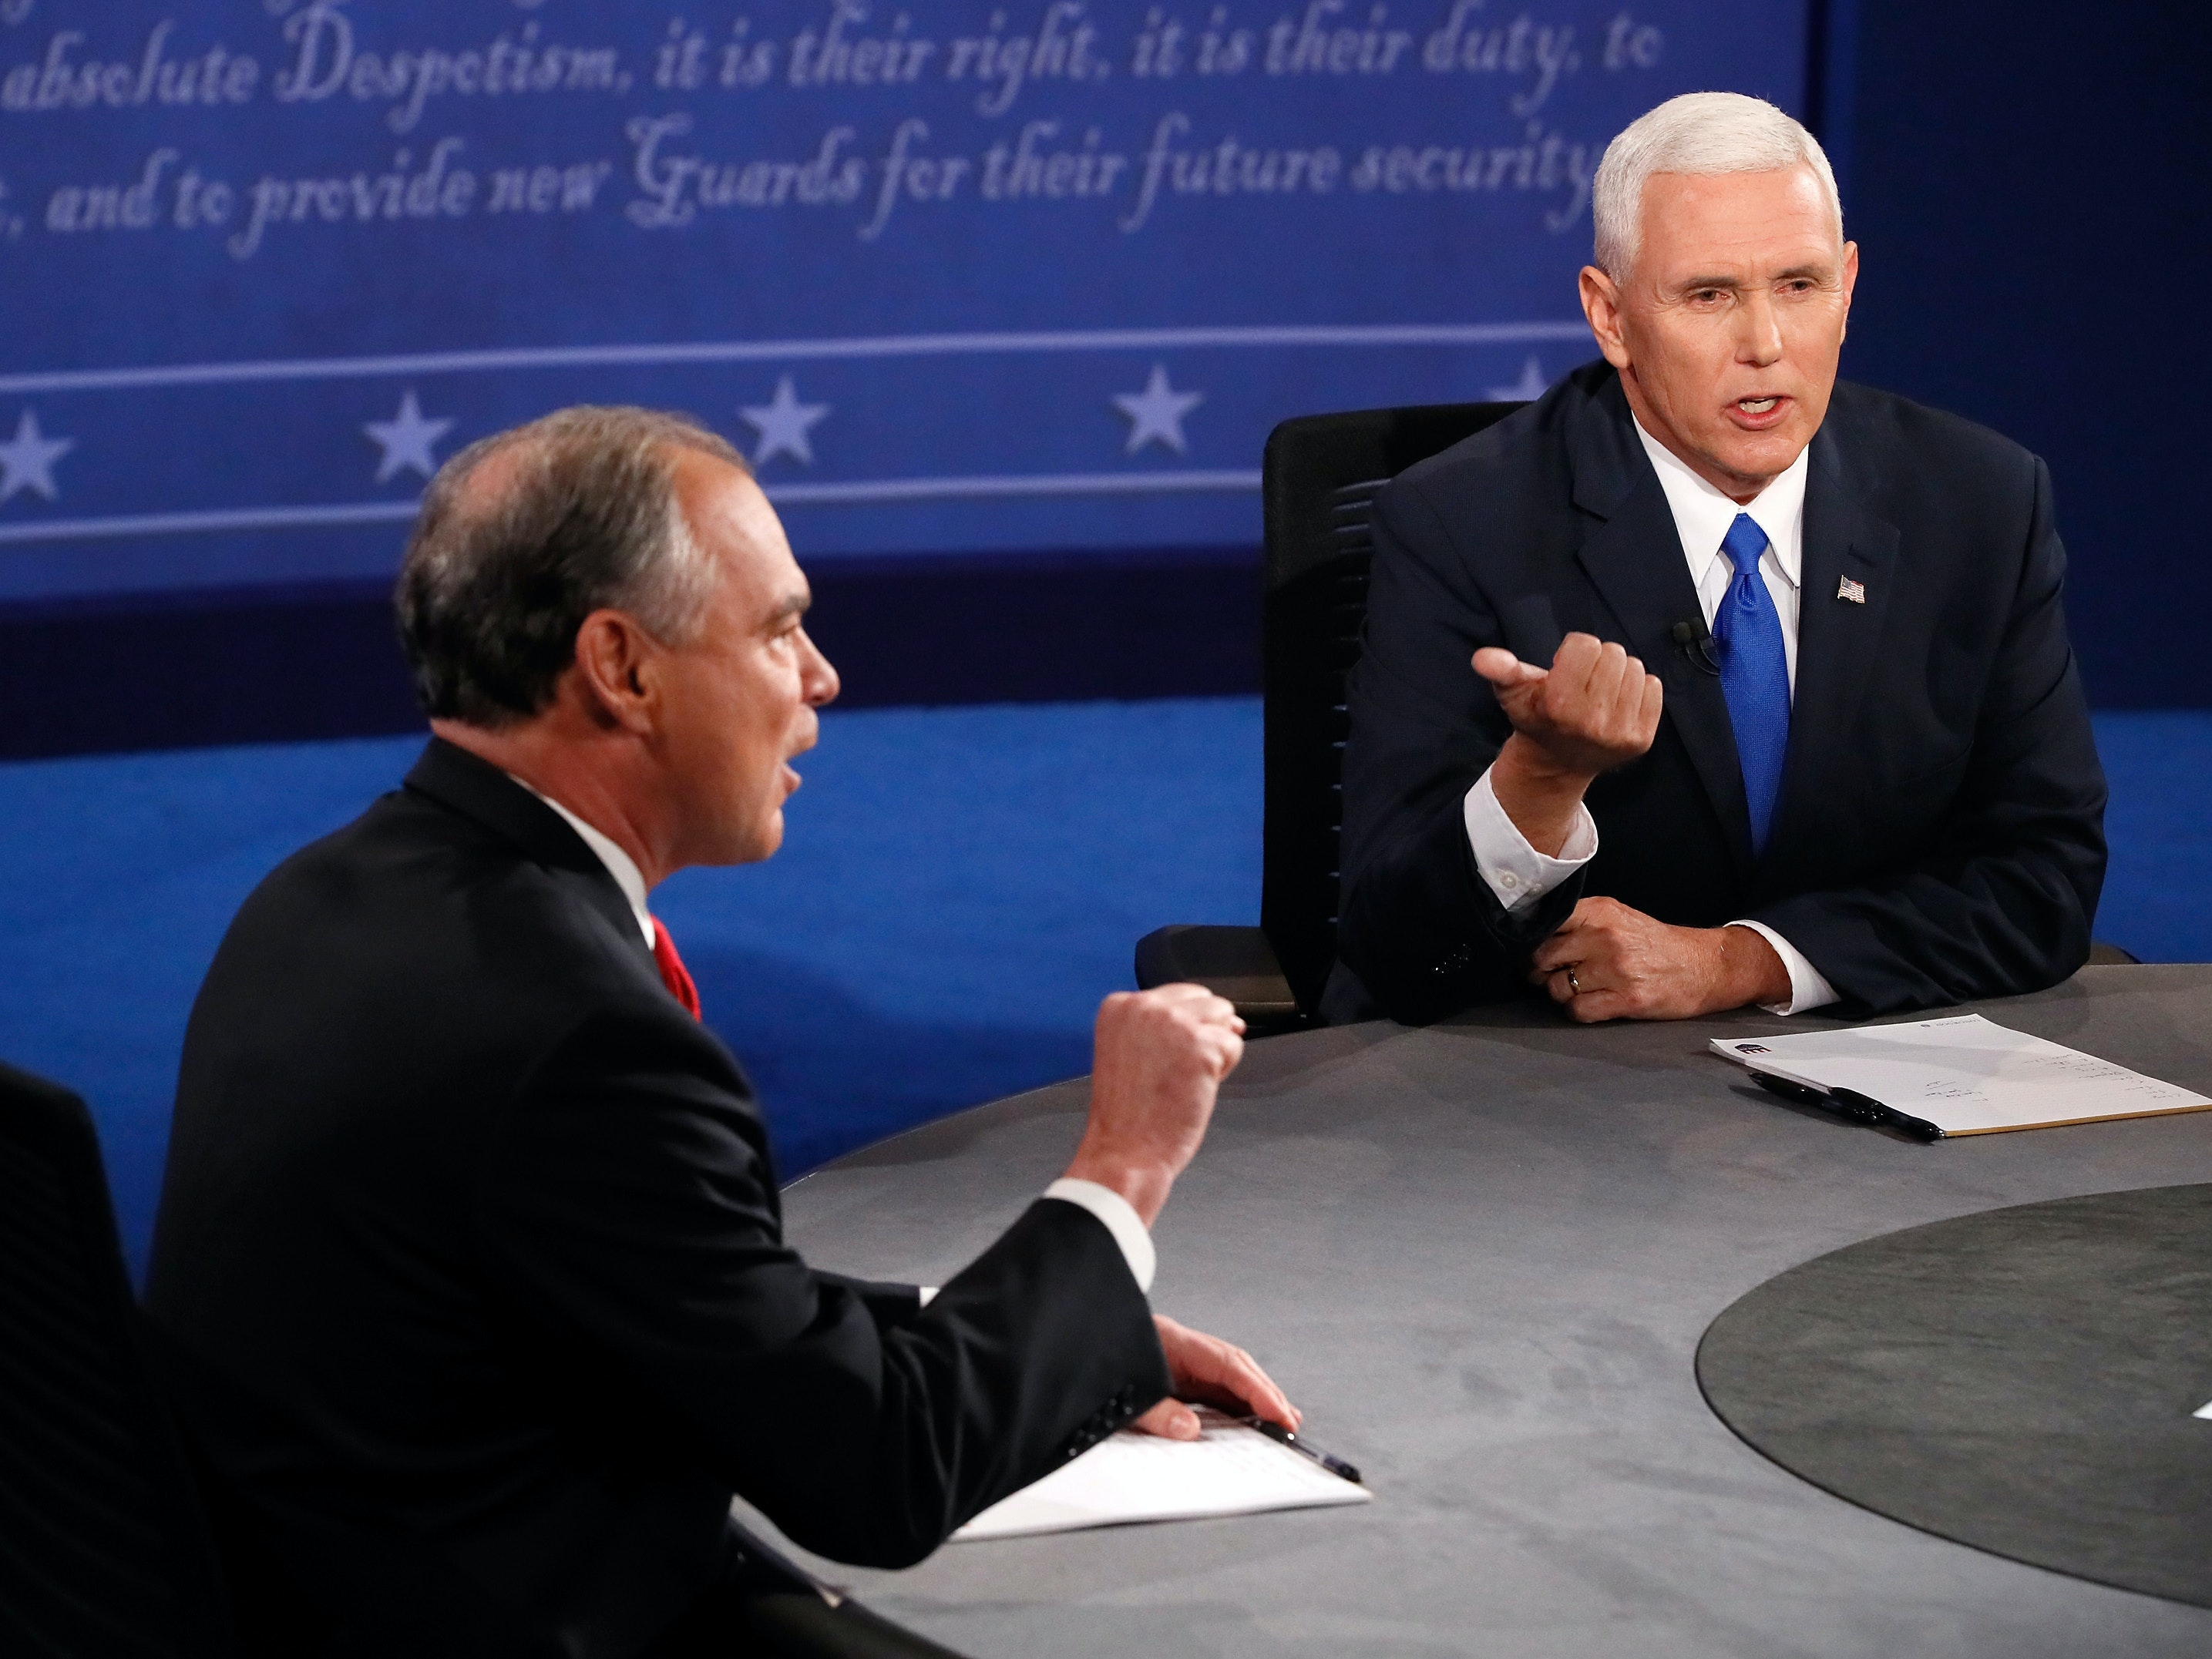 Mike Pence Brings Up Cyber War, Pivots to Clinton's Emails